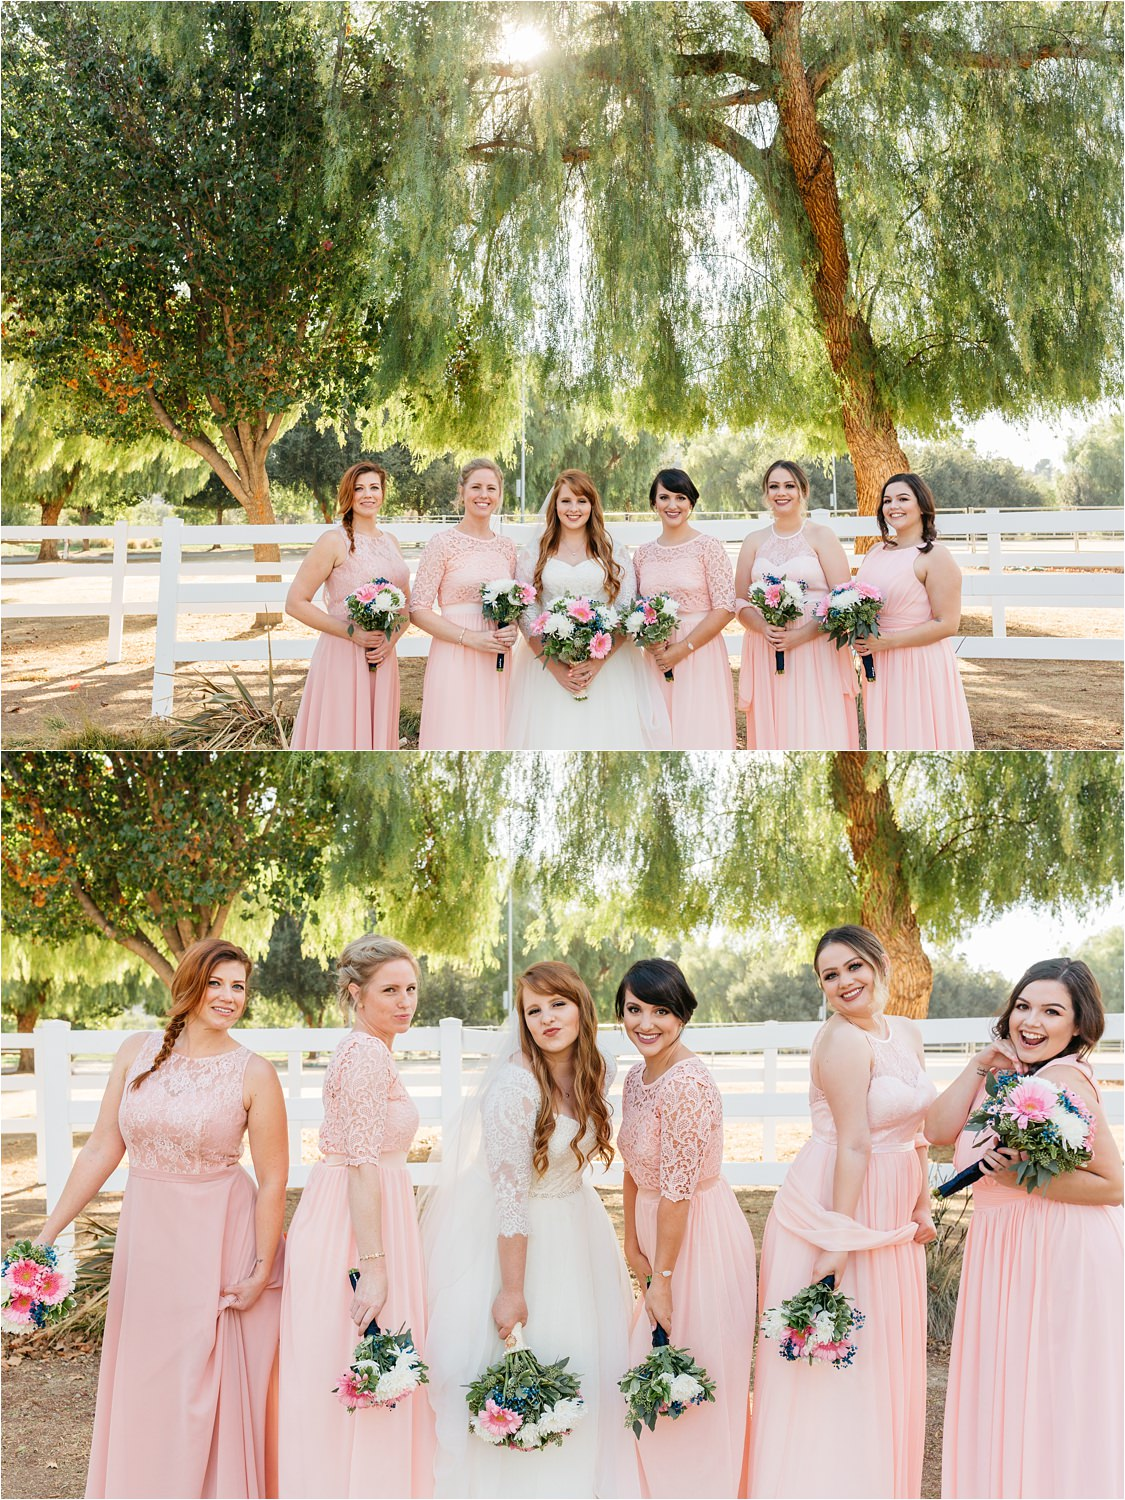 Bride and Bridesmaids Photos at McCoy Equestrian Center - https://brittneyhannonphotography.com